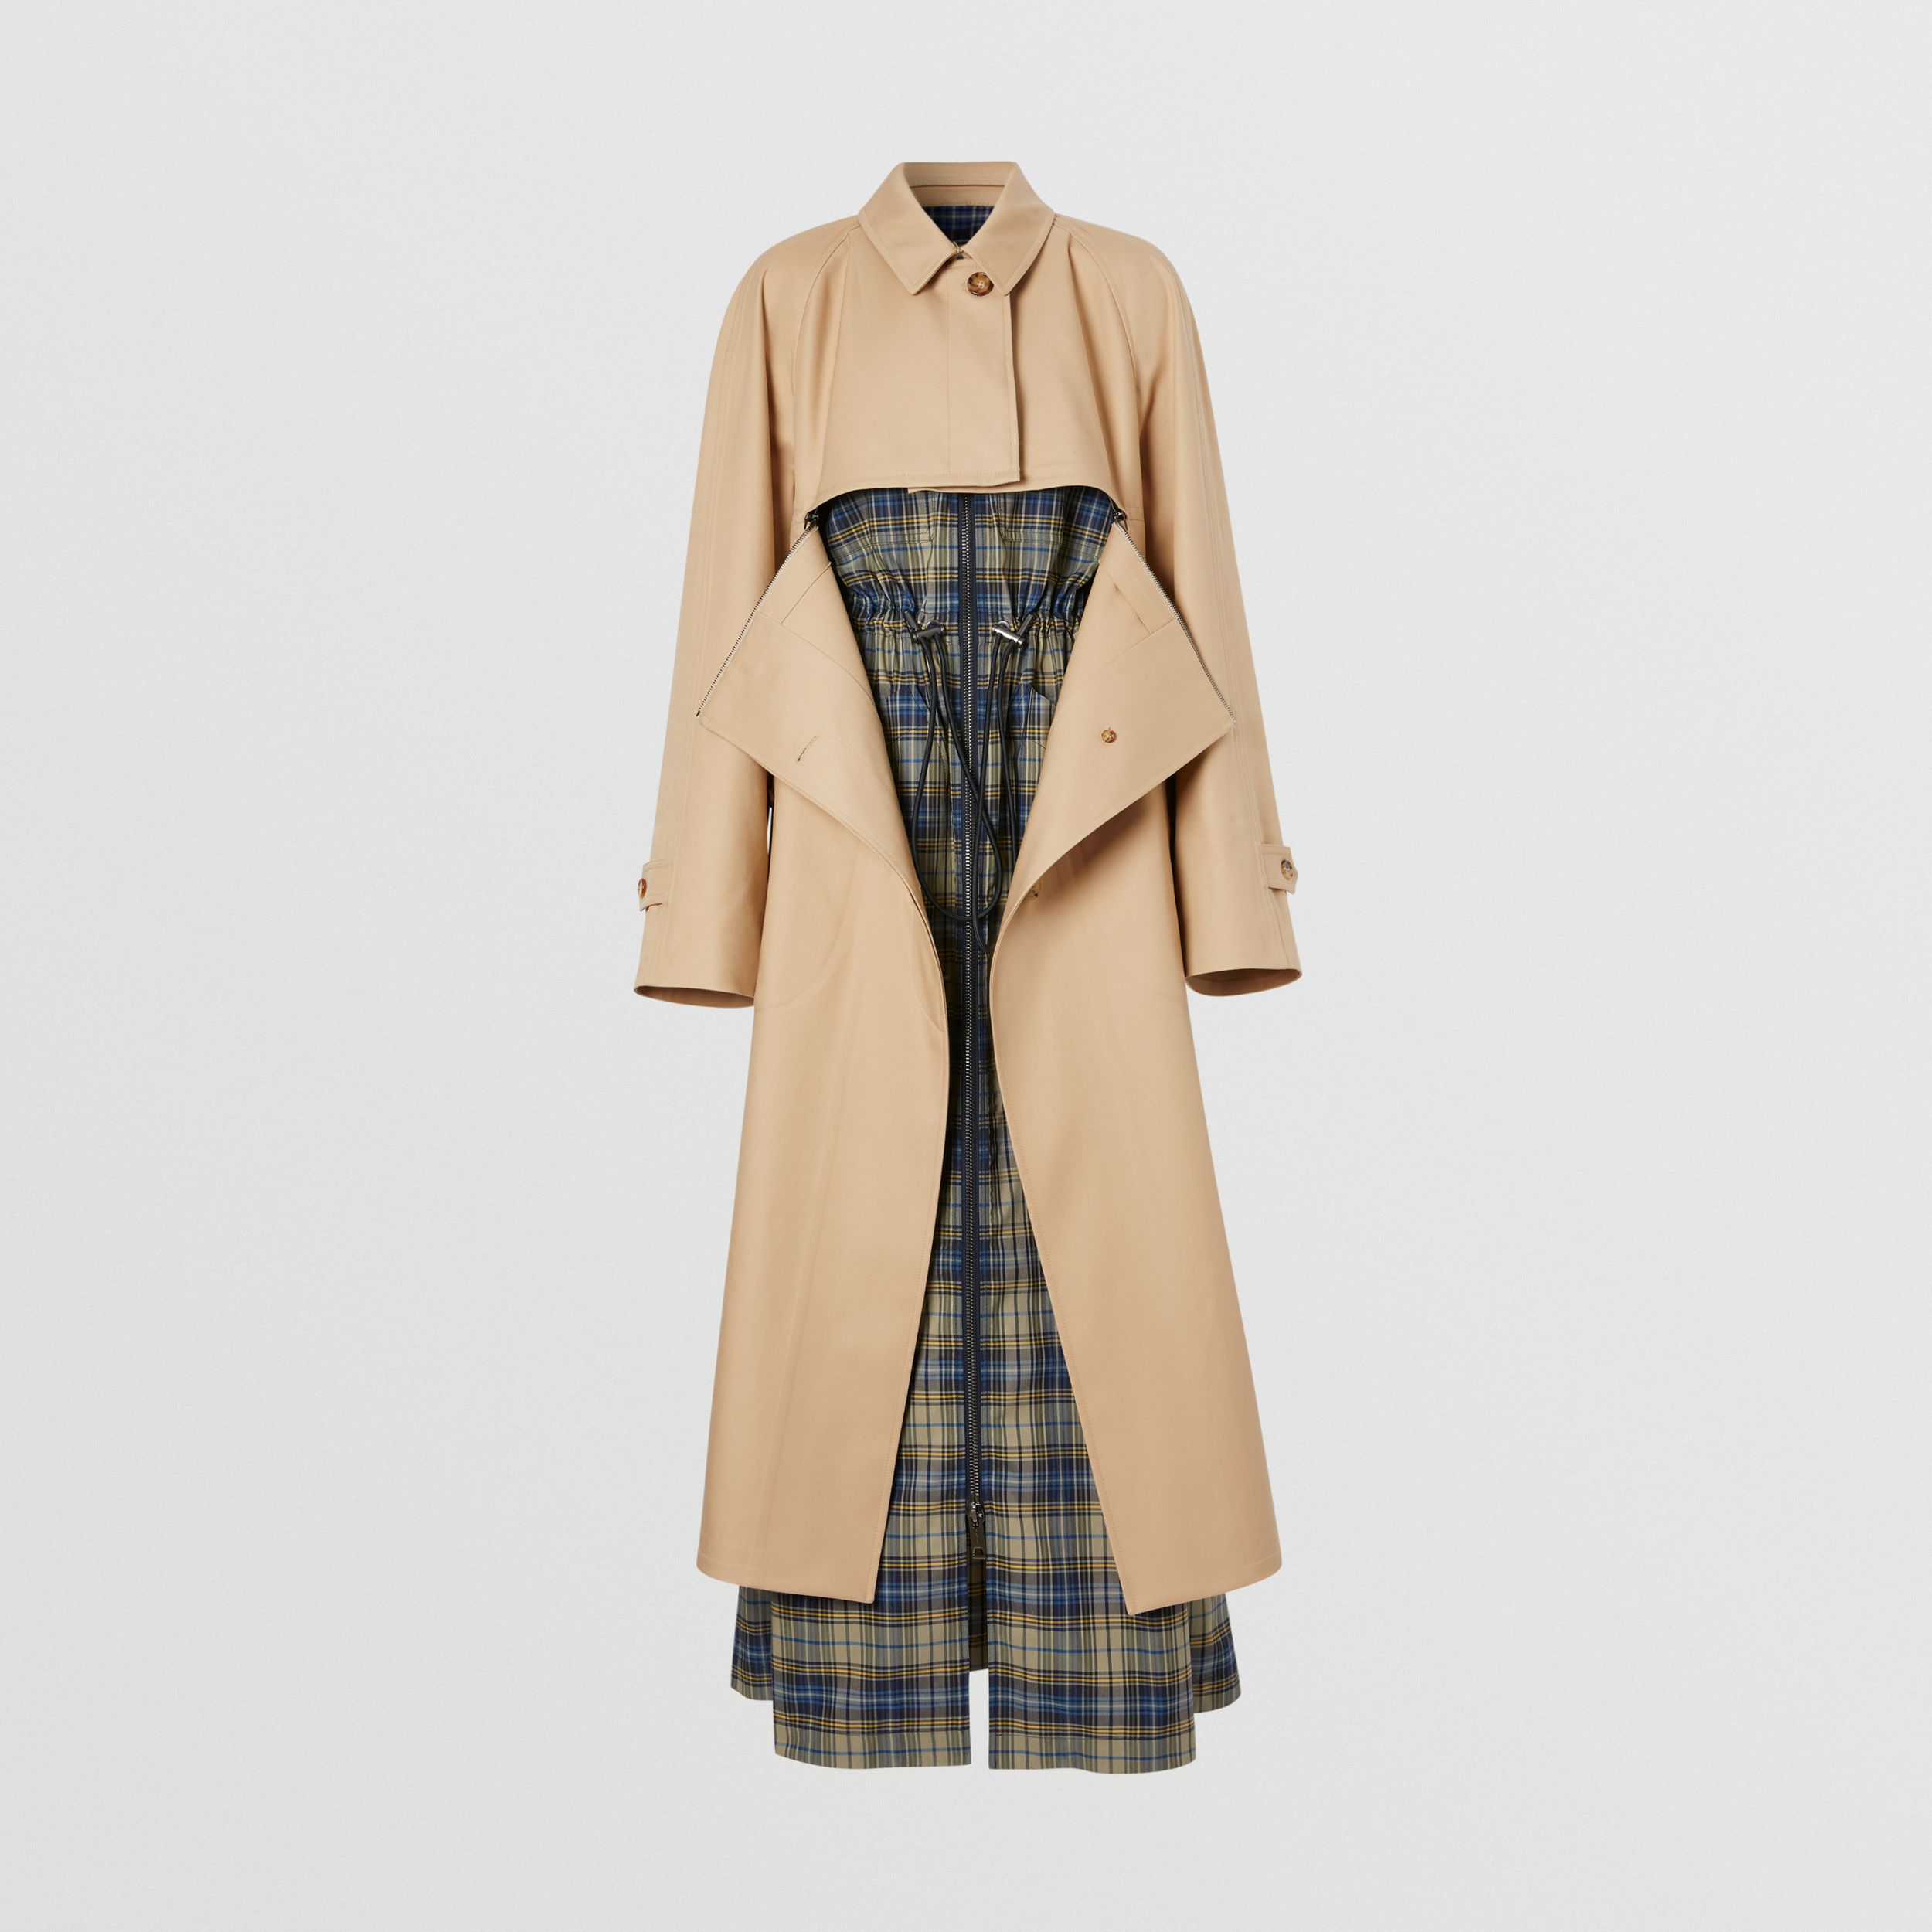 Cotton Gabardine Reconstructed Car Coat in Soft Fawn - Women | Burberry - 4